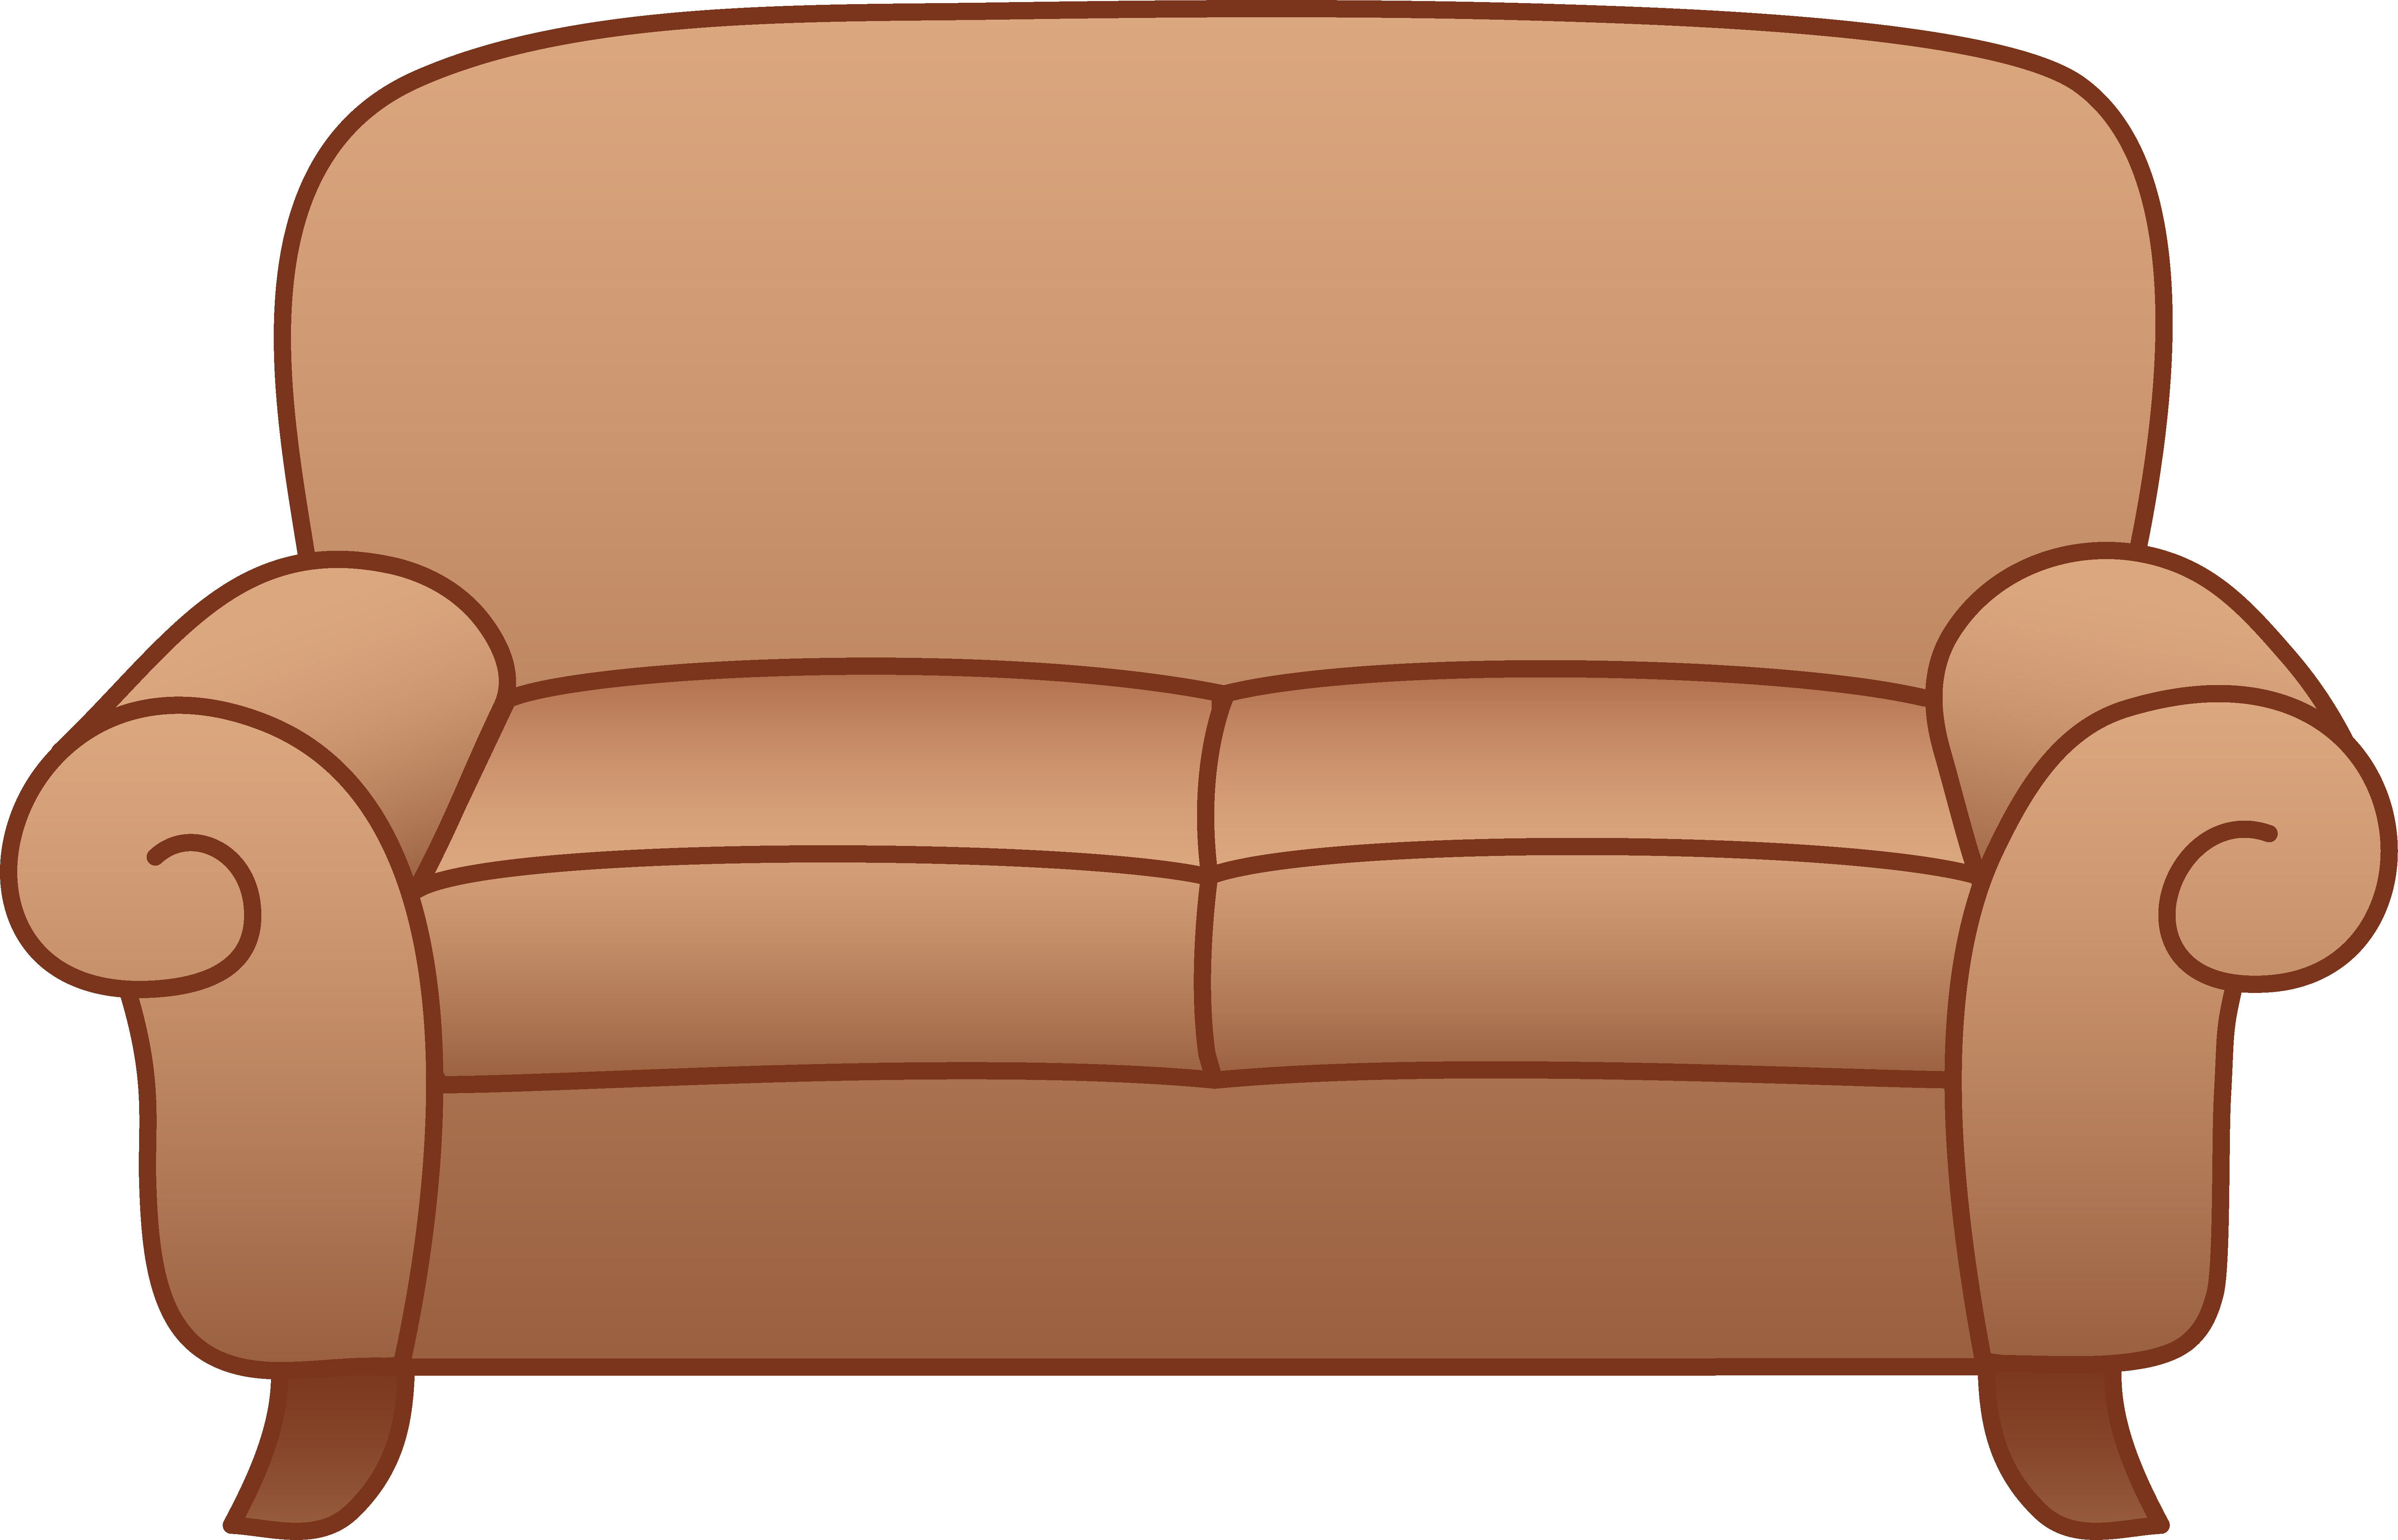 Couch Clipart-couch clipart-3